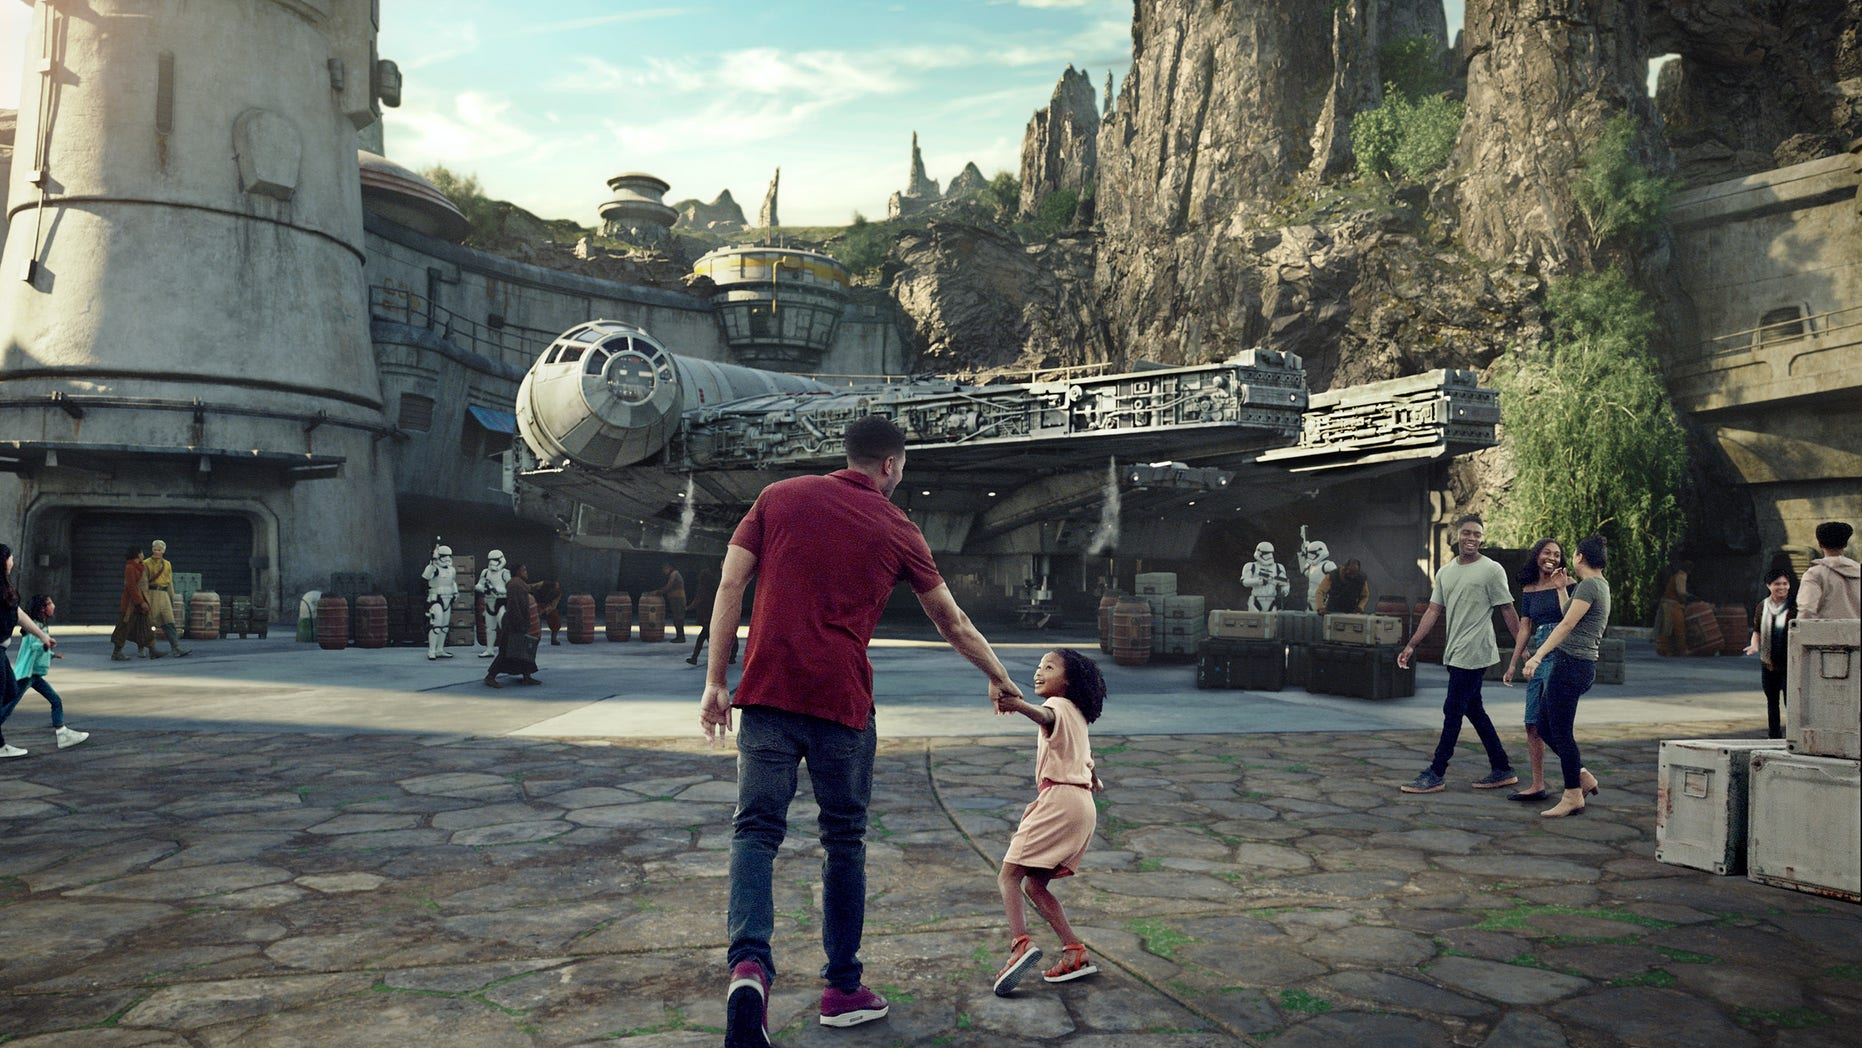 Disney CEO announces opening dates for Star Wars 'lands'